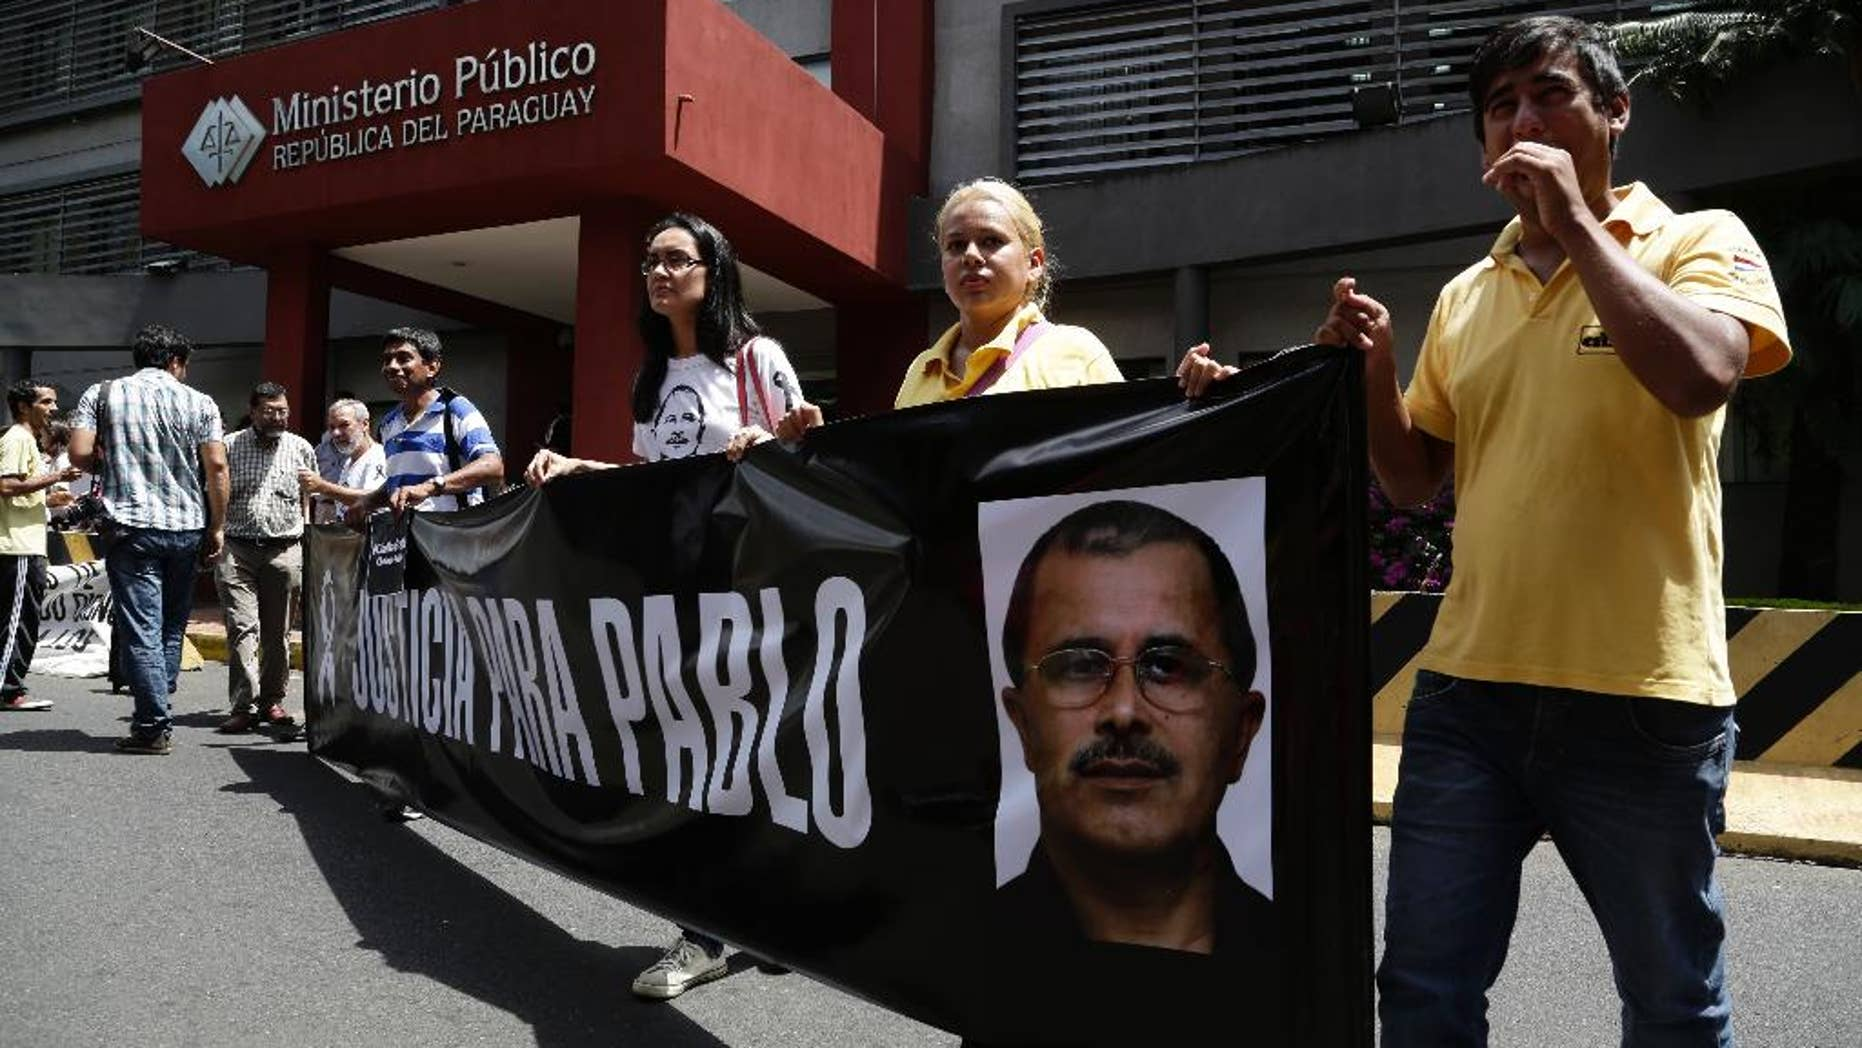 """Journalists hold a banner that shows an image of slain reporter Pablo Medina, with a message that reads in Spanish; """"Justice for Pablo"""" in a protest sparked by the death of radio journalist Gerardo Servian, outside the Attorney General's office in Asuncion, Paraguay, Friday, March 6, 2015. Medina, who focused on investigations exposing corruption and drug traffickers, was killed in October. Paraguayan officials say Servian was shot to death Thursday in a Brazilian city bordering a crime-ridden area that is a hotbed for drugs and arms smuggling. (AP Photo/Jorge Saenz)"""